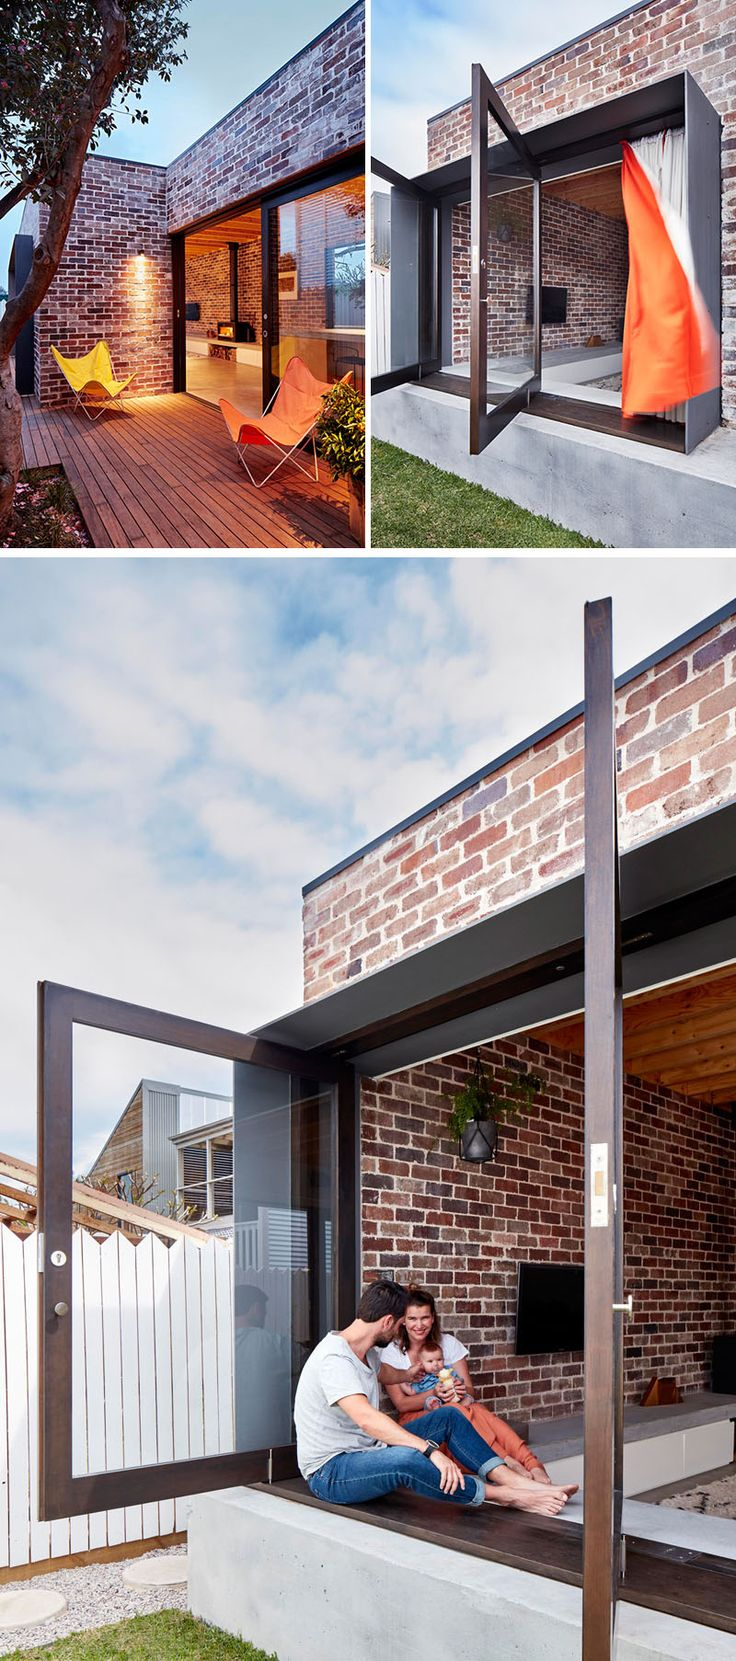 14 Modern Houses Made Of Brick | This small family home is covered with bricks that contrast the modern features of the house, like the large pivoting windows.